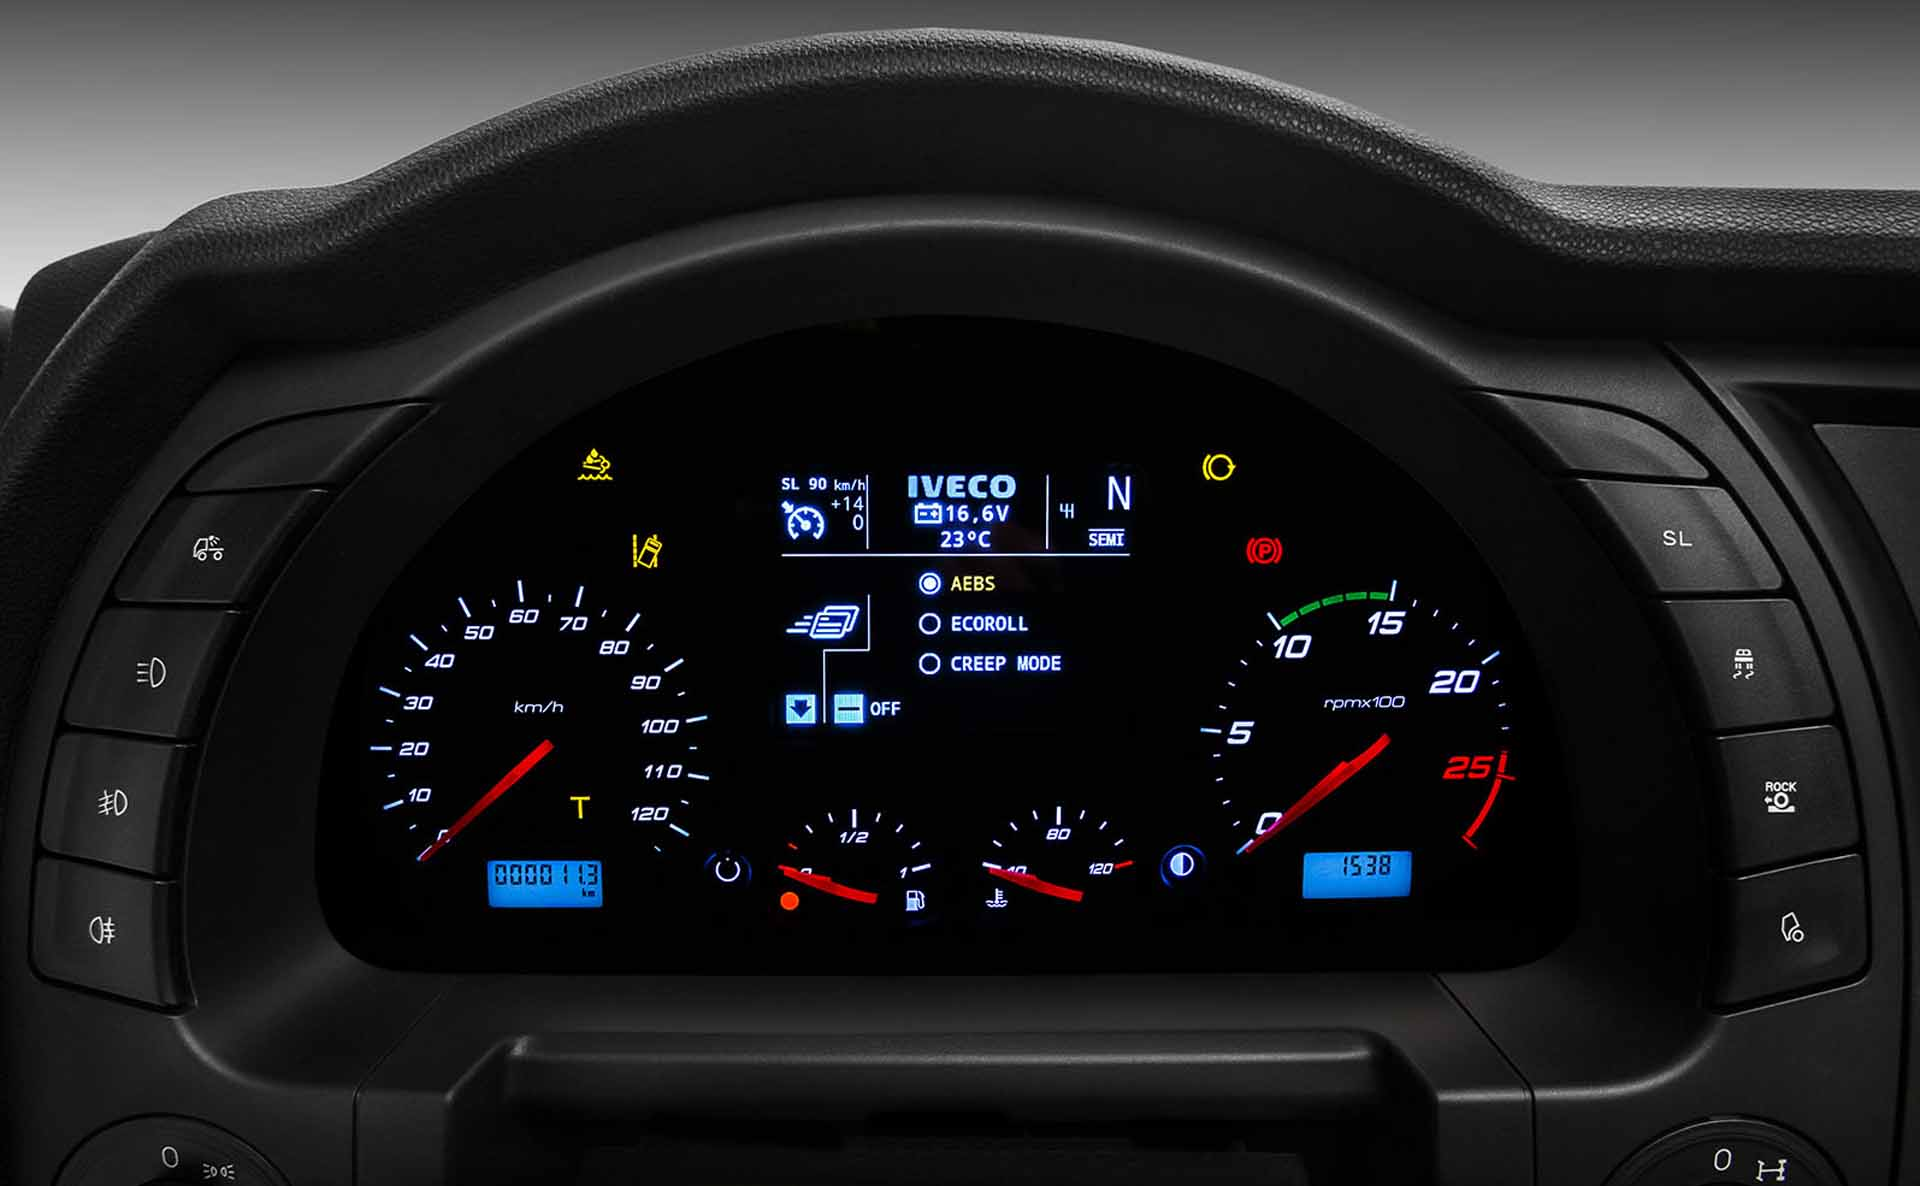 iveco-new-stralis-xp-dashboard_27852929165_o